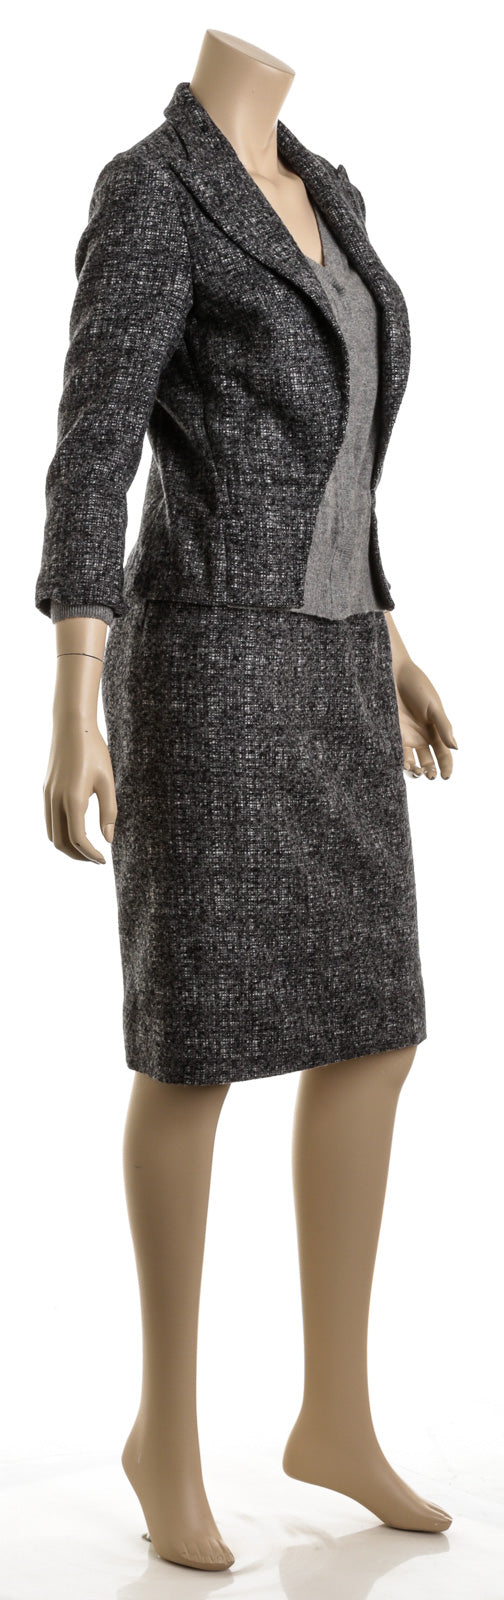 Dolce & Gabbana Gray Alpaca and Cashmere Tweed Two-Piece Suit (Size S)